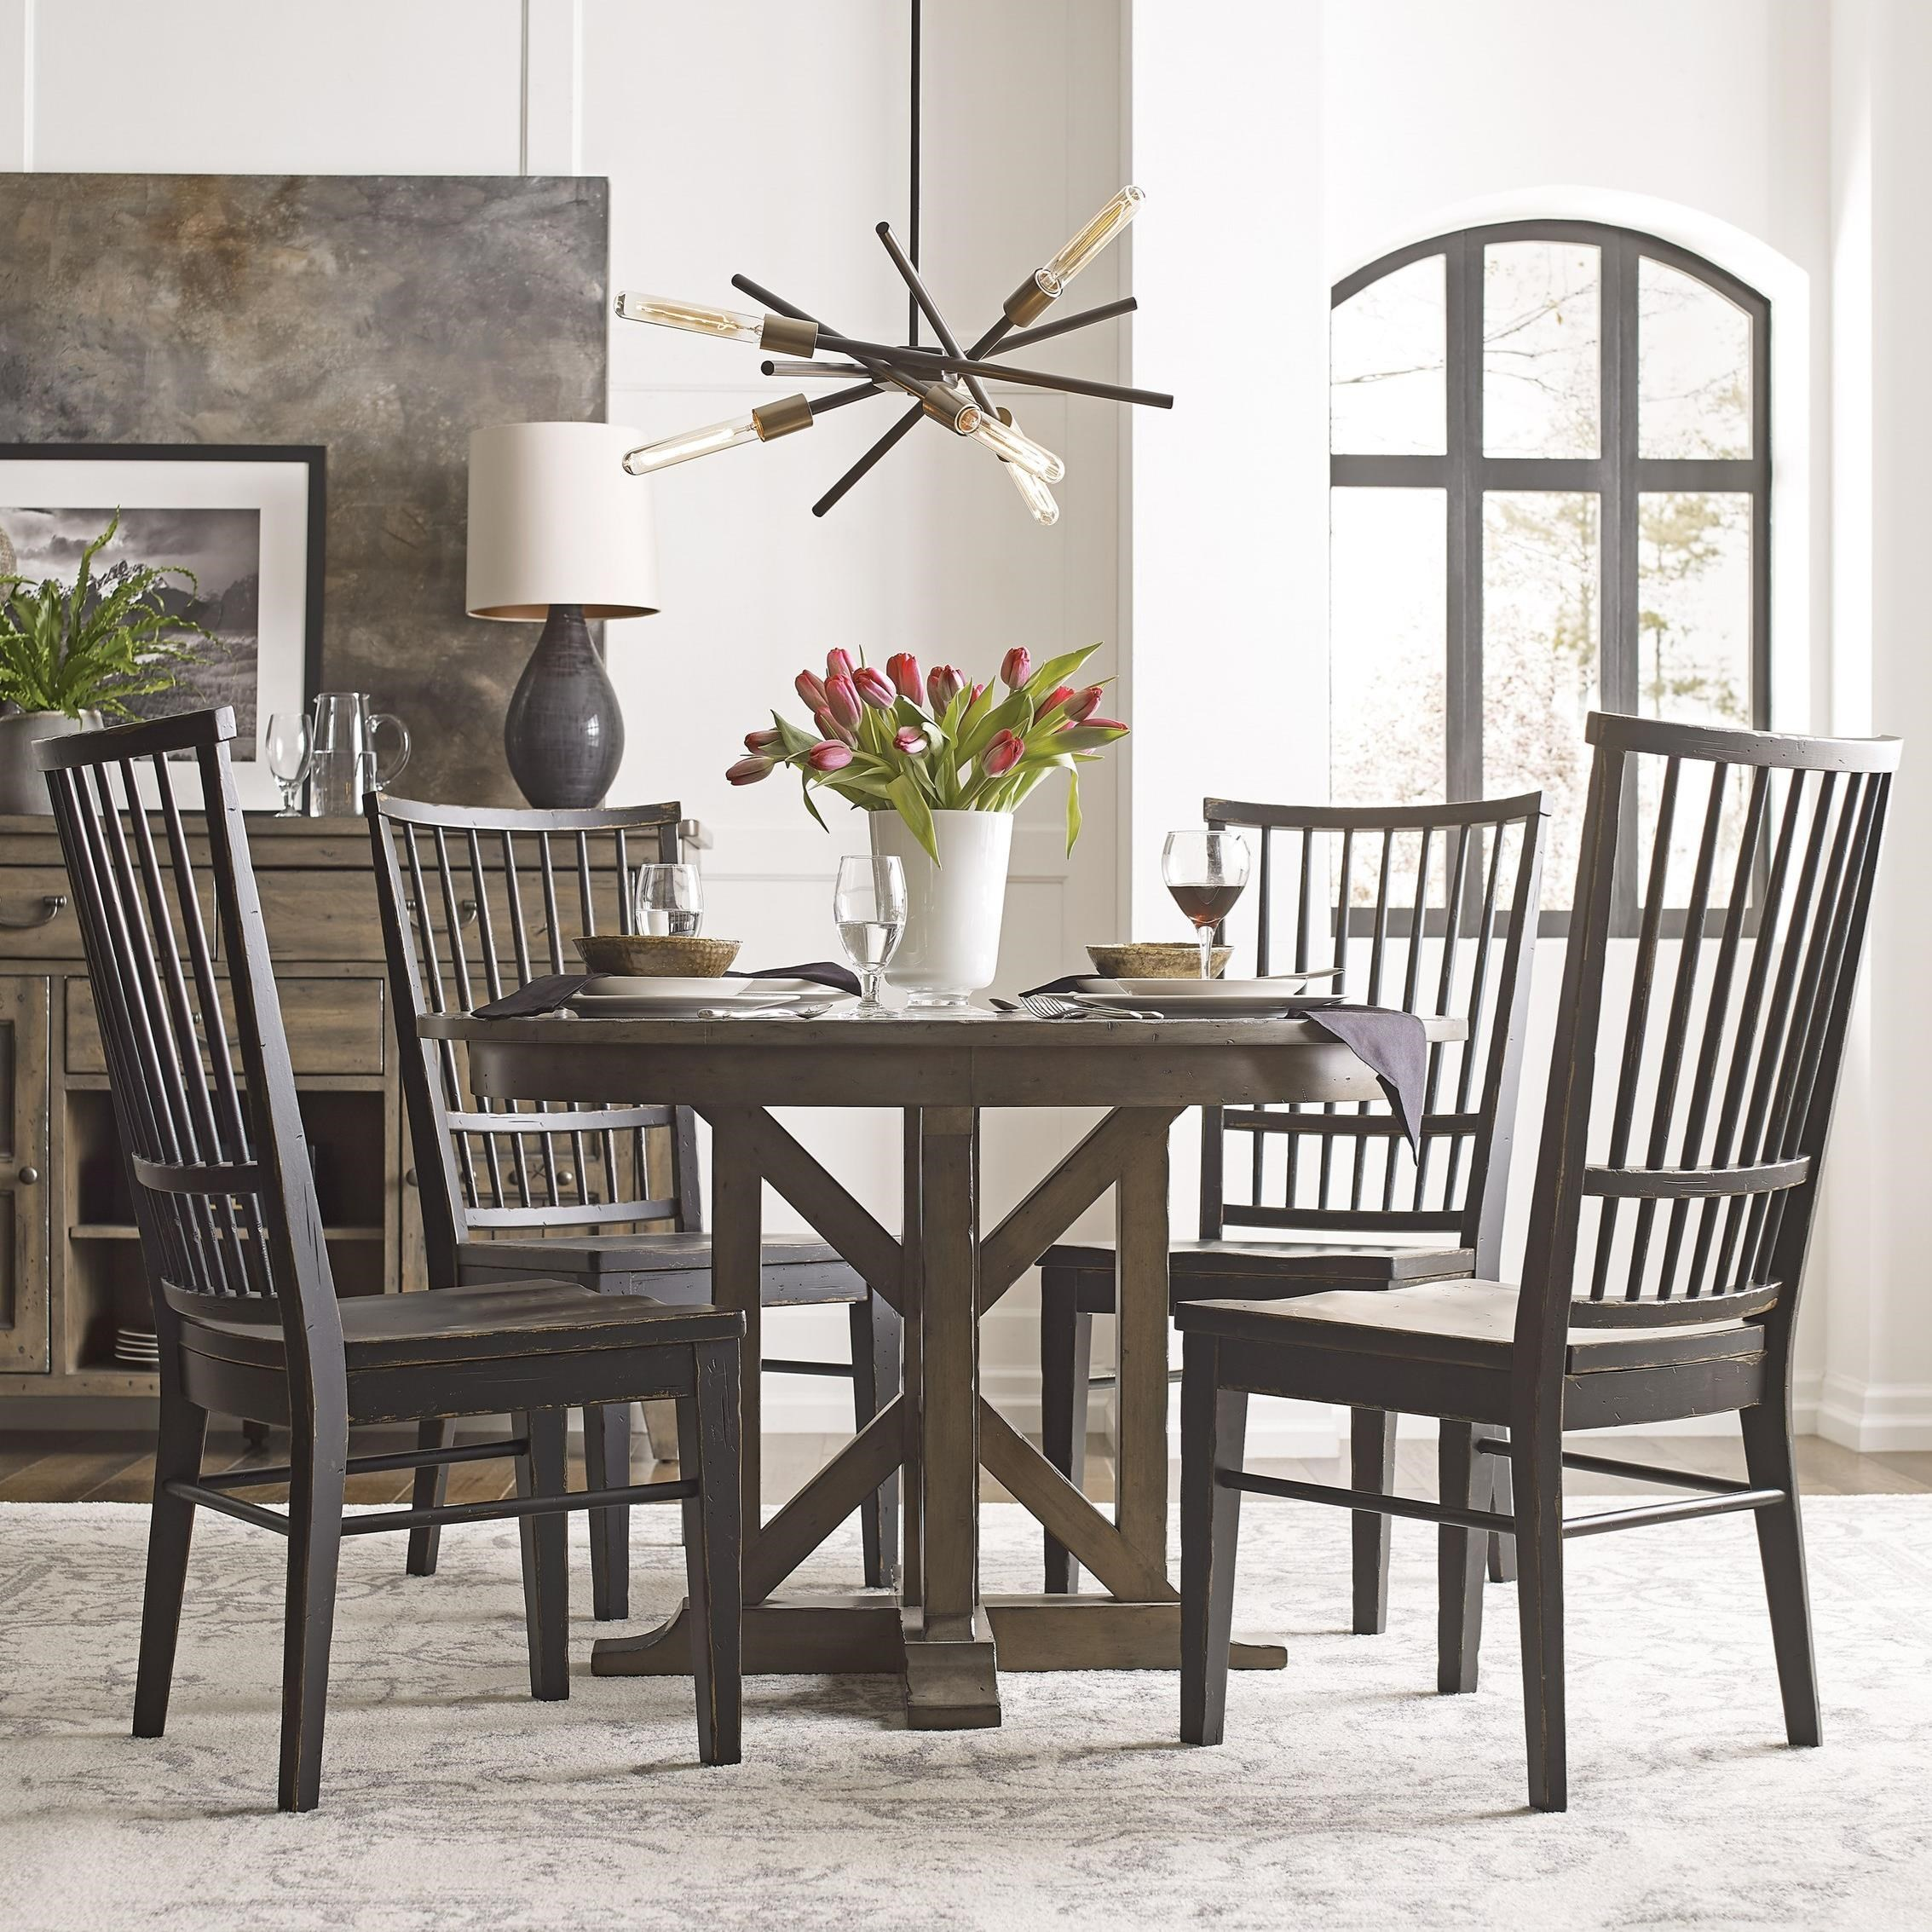 Mill House Dining Table Set with 4 Chairs by Kincaid Furniture at Johnny Janosik